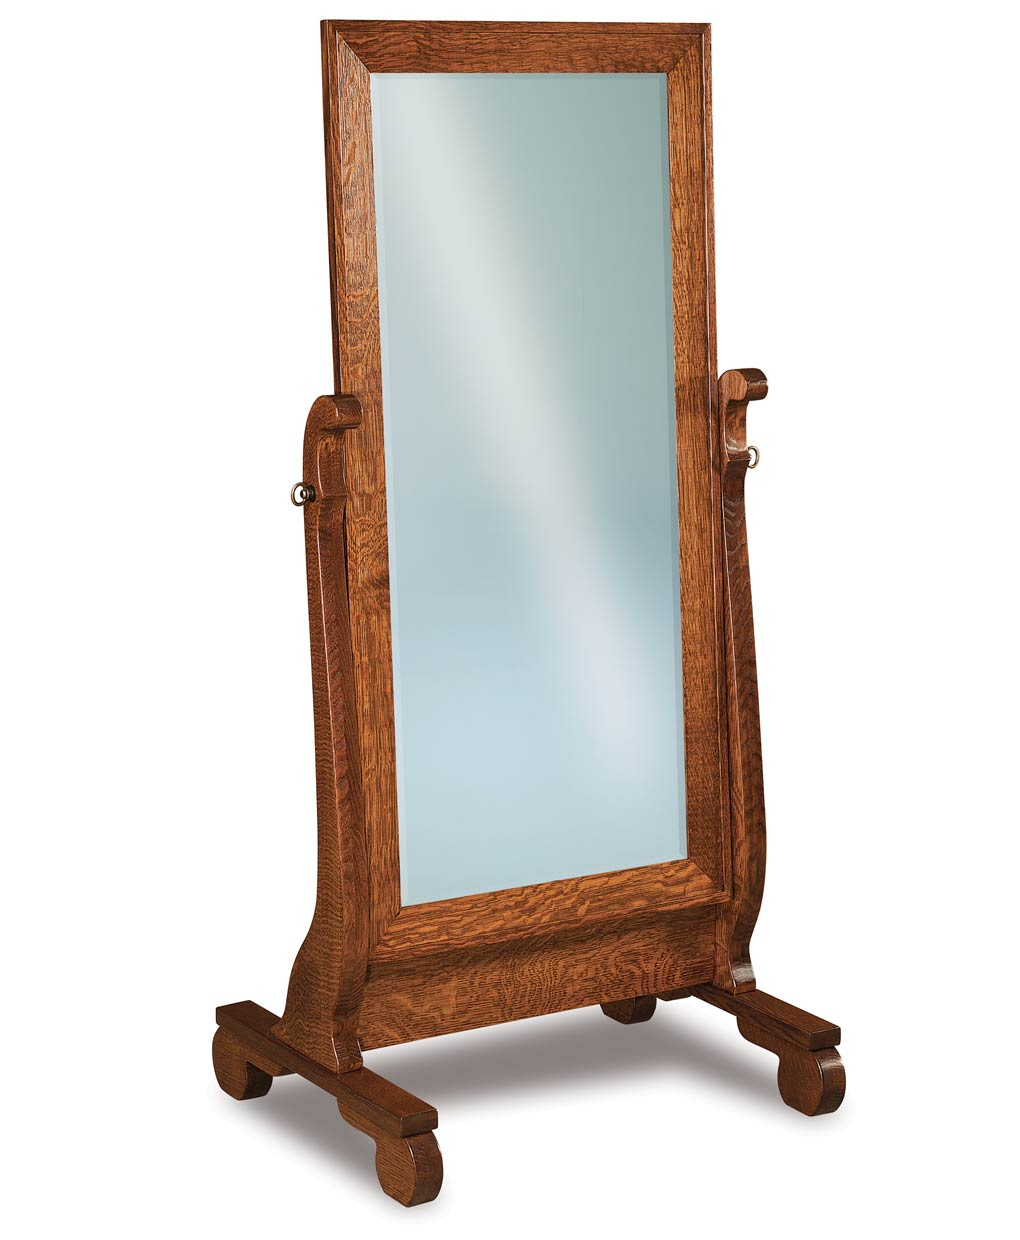 Old classic sleigh beveled cheval mirror amish direct for Classic mirror